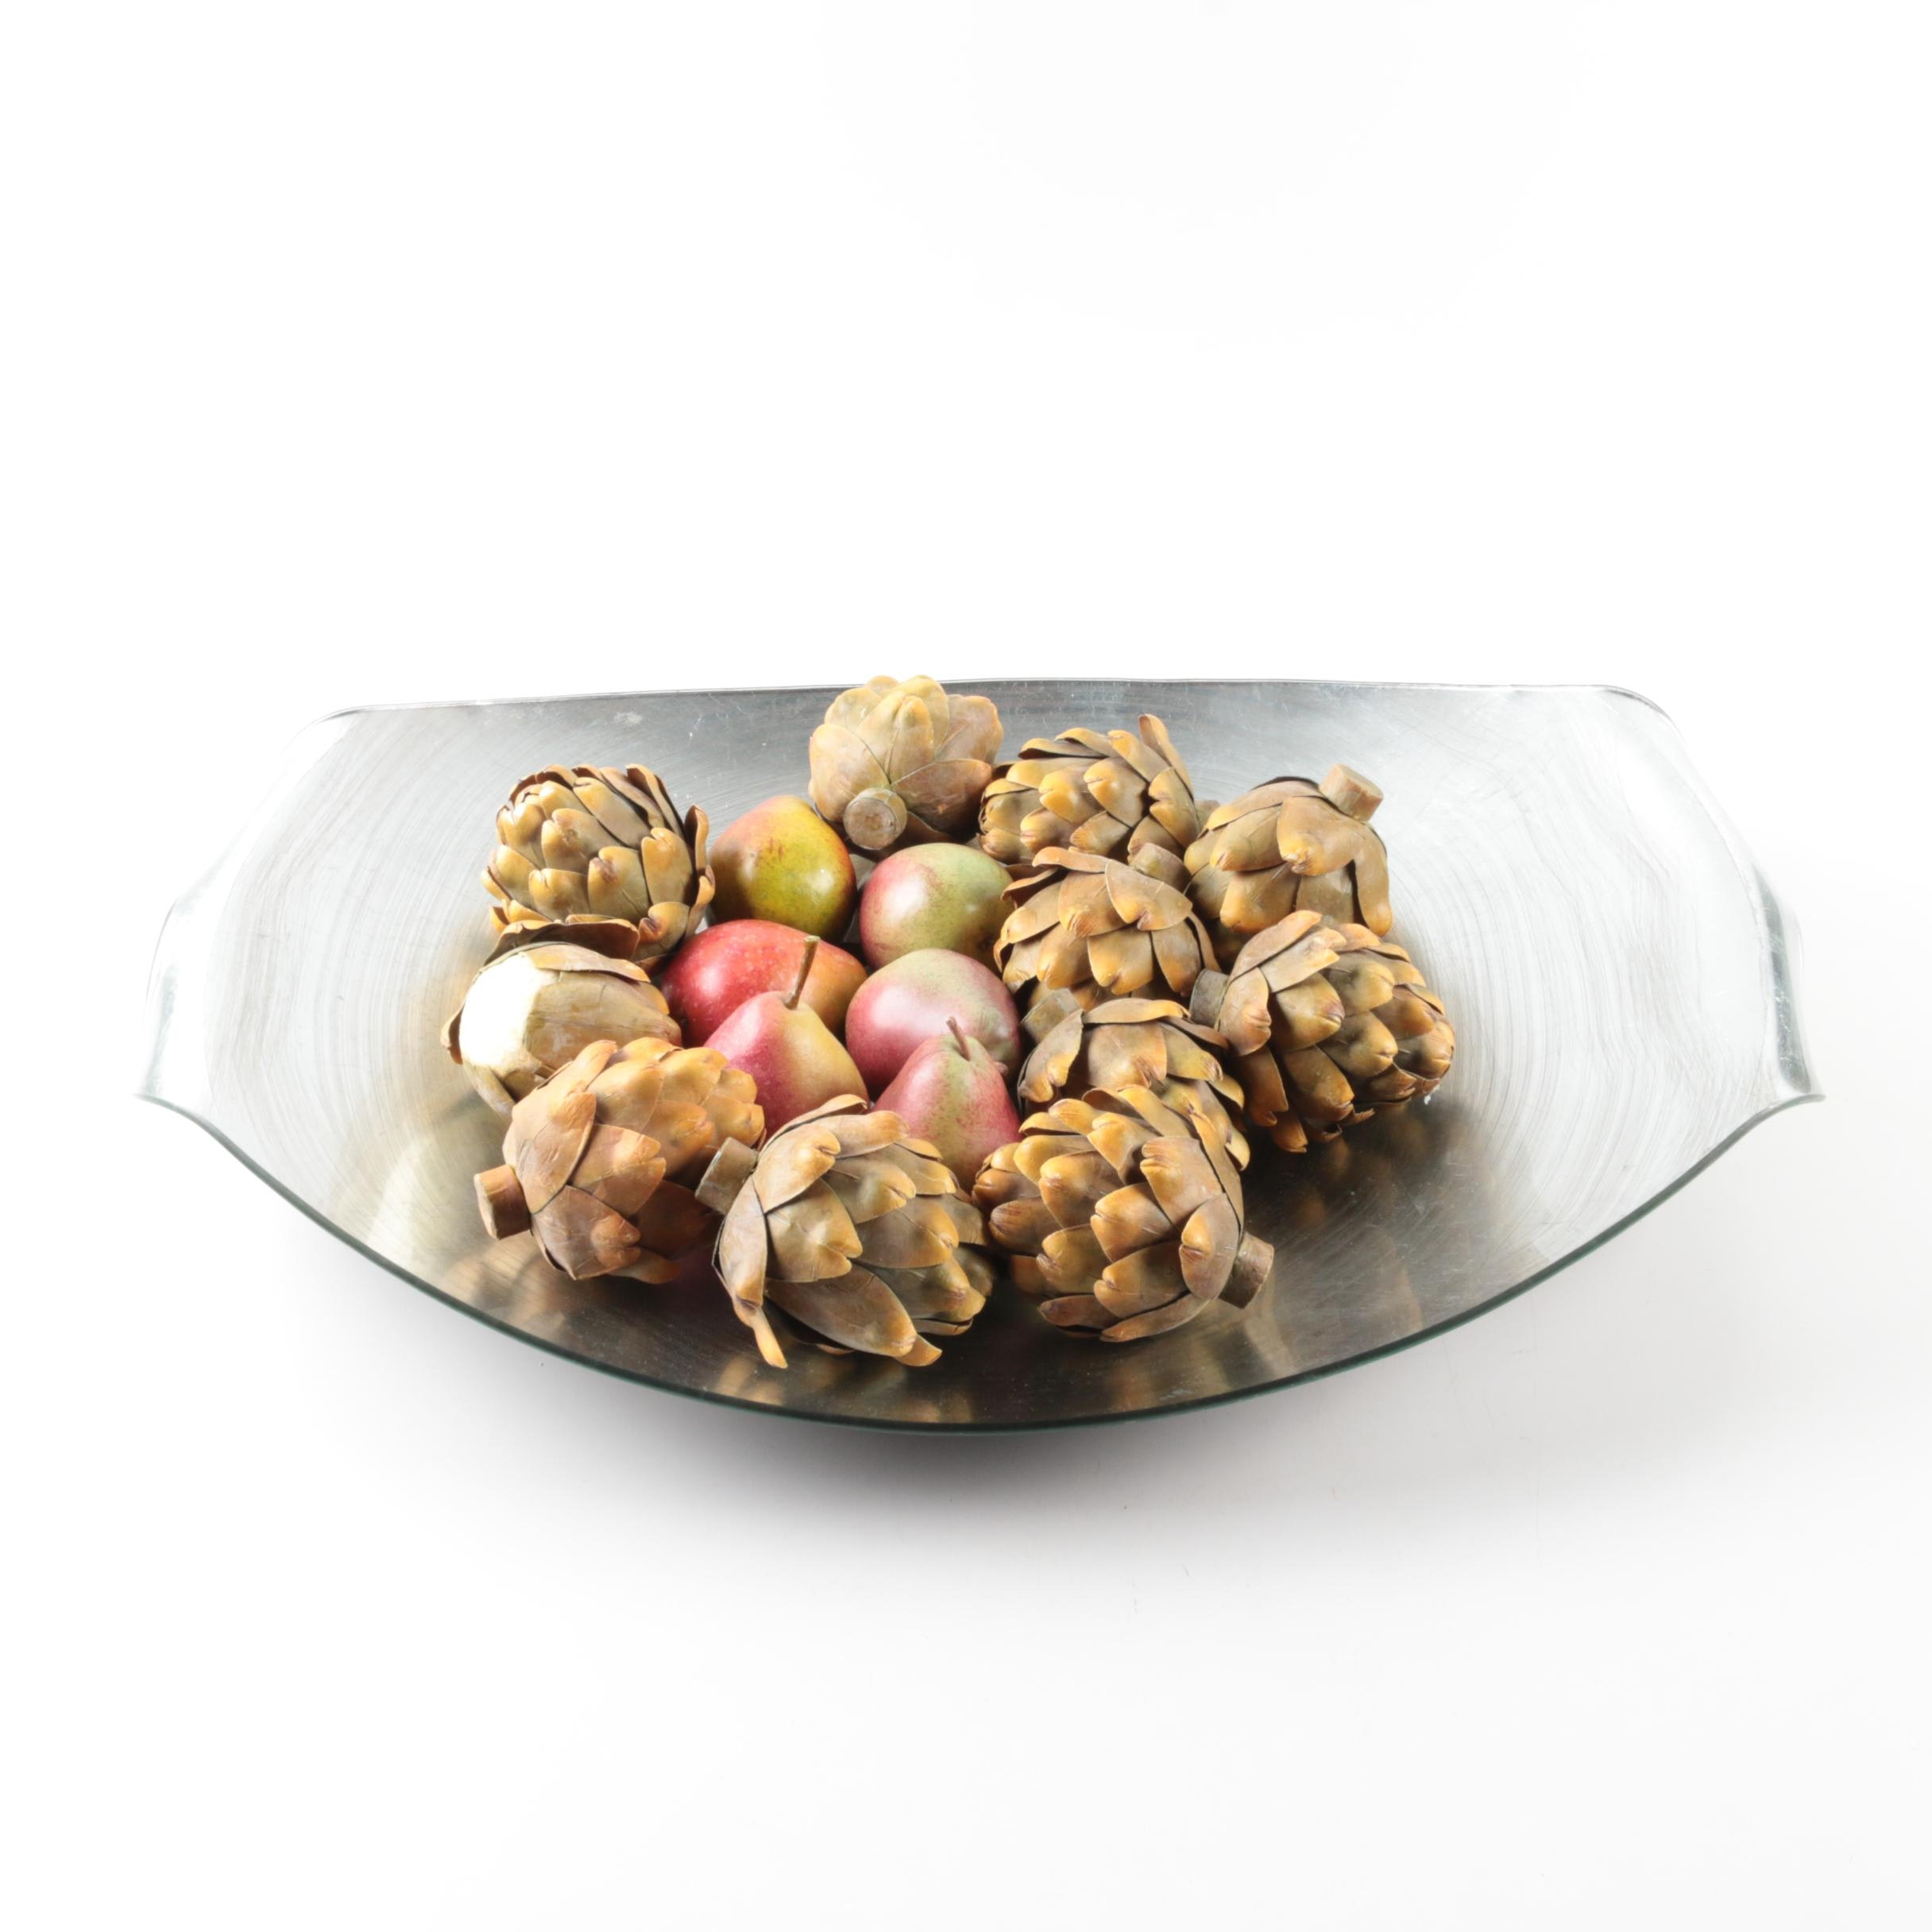 Neiman Marcus Tray with Decorative Fruit